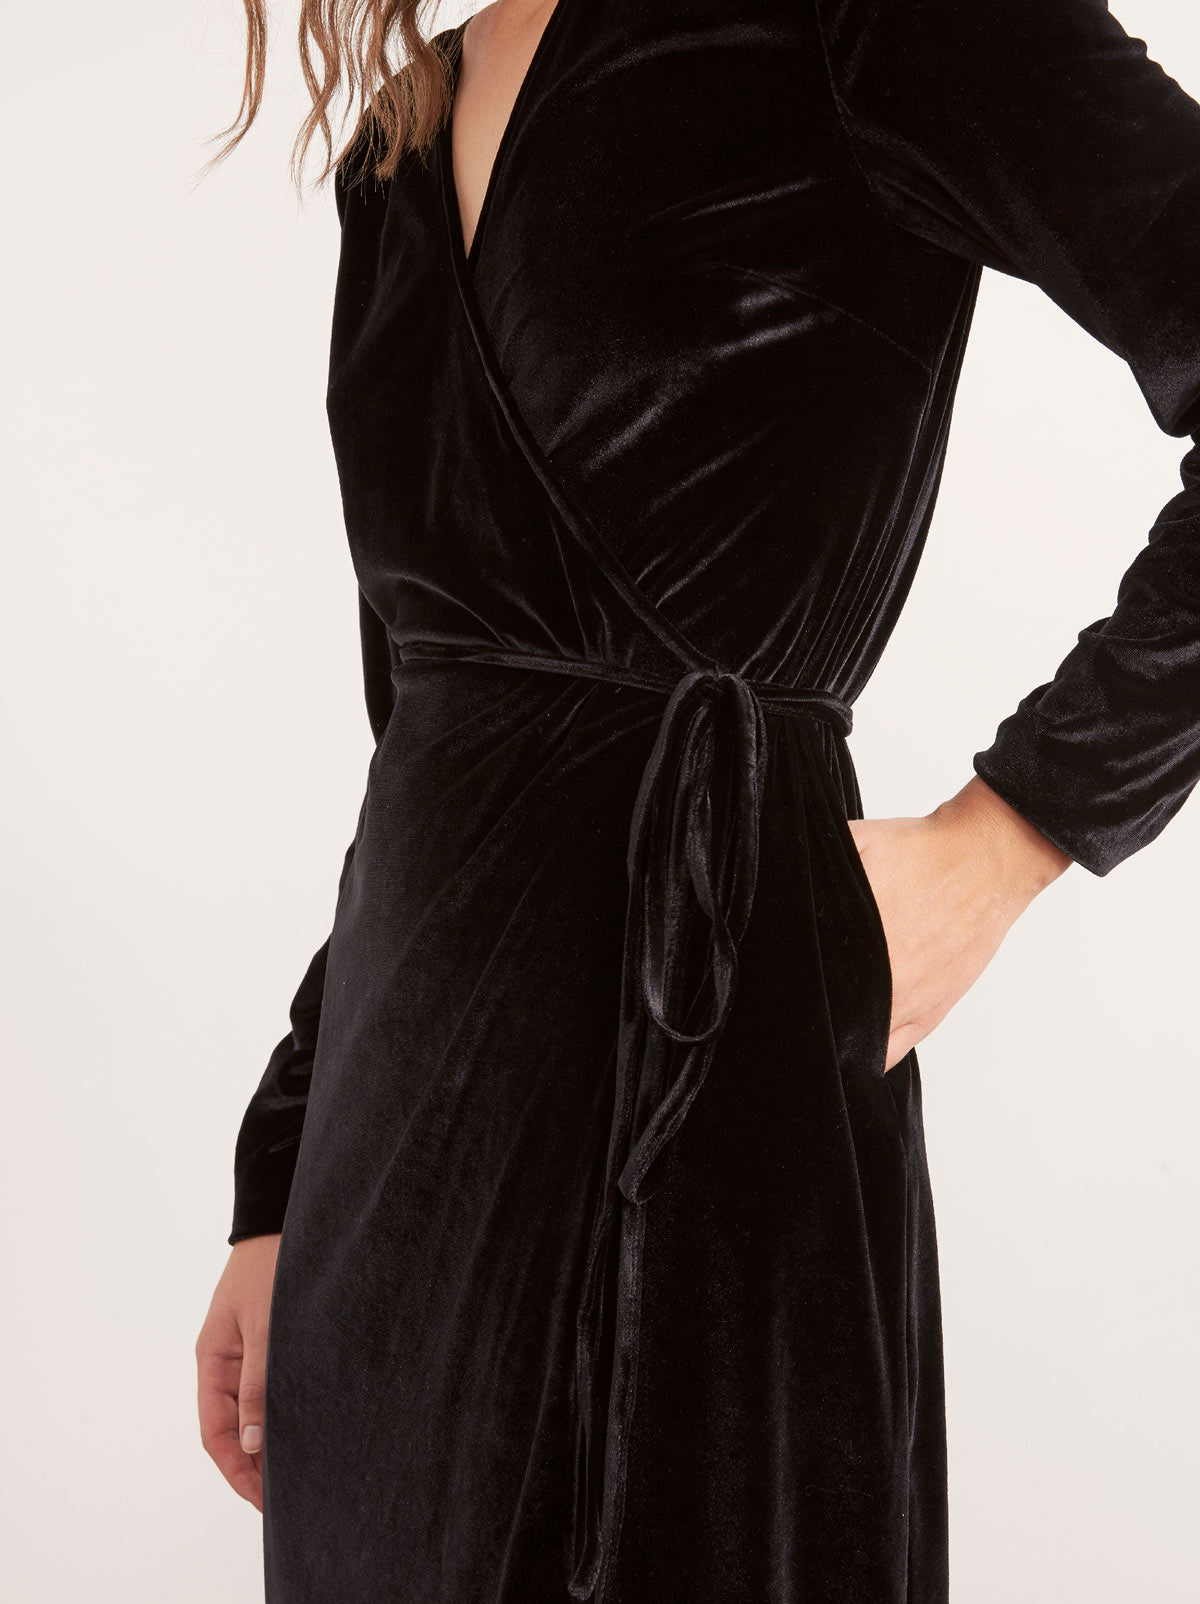 Maya Black Velvet Midi Wrap Dress by KITRI Studio